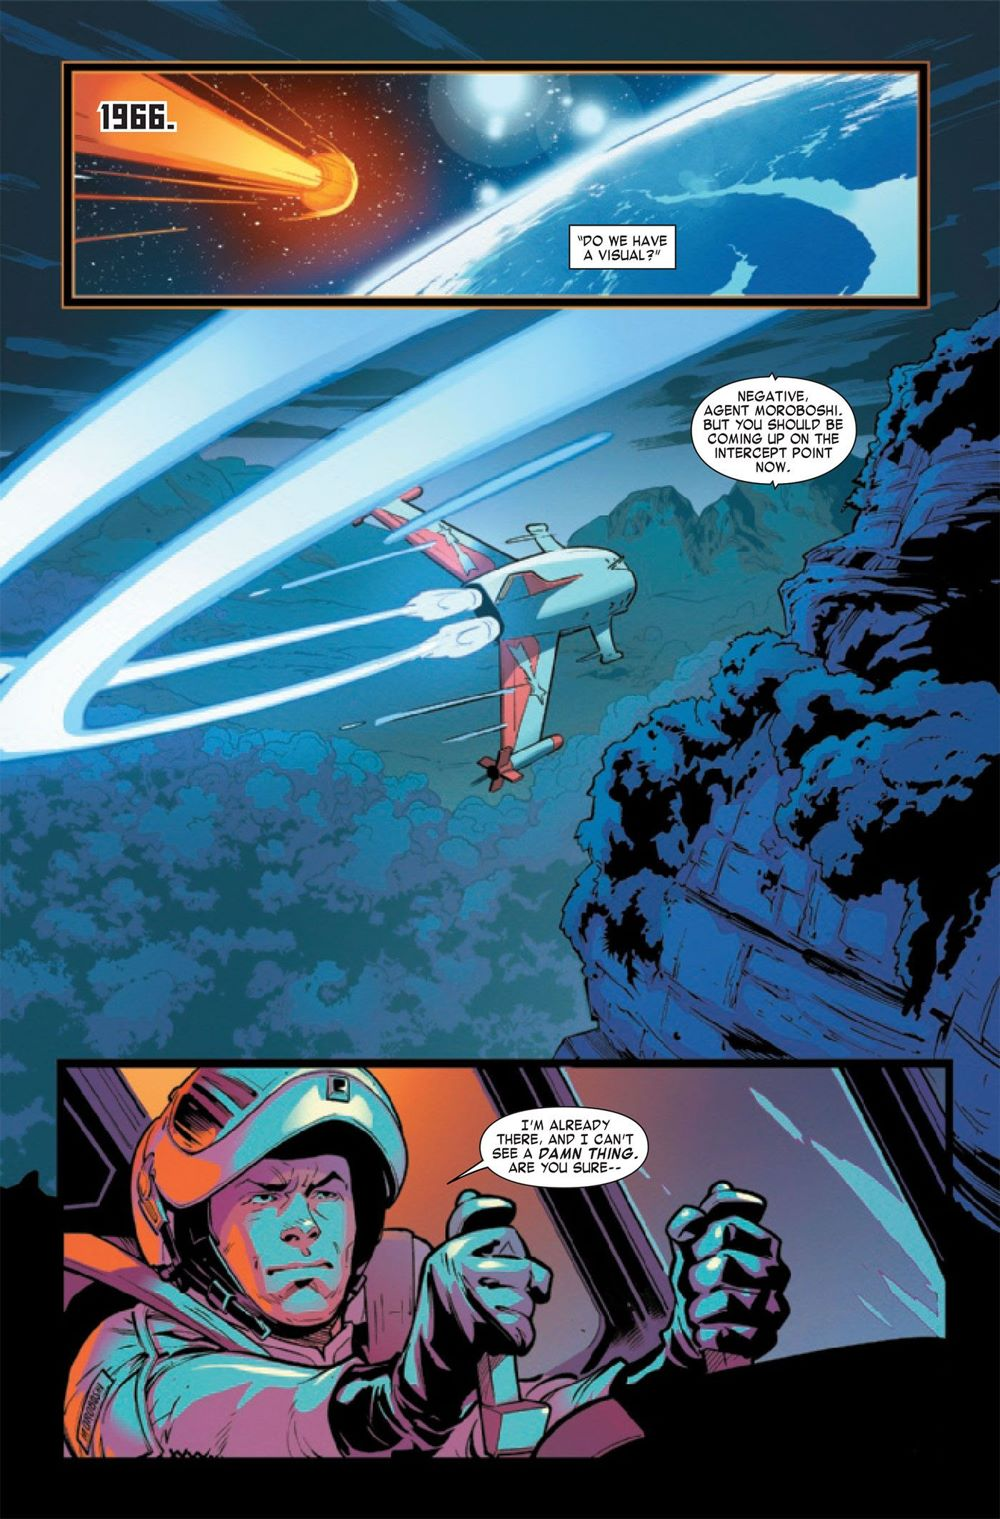 ULTRAMANRISE2020001-Preview-2 ComicList Previews: THE RISE OF ULTRAMAN #1